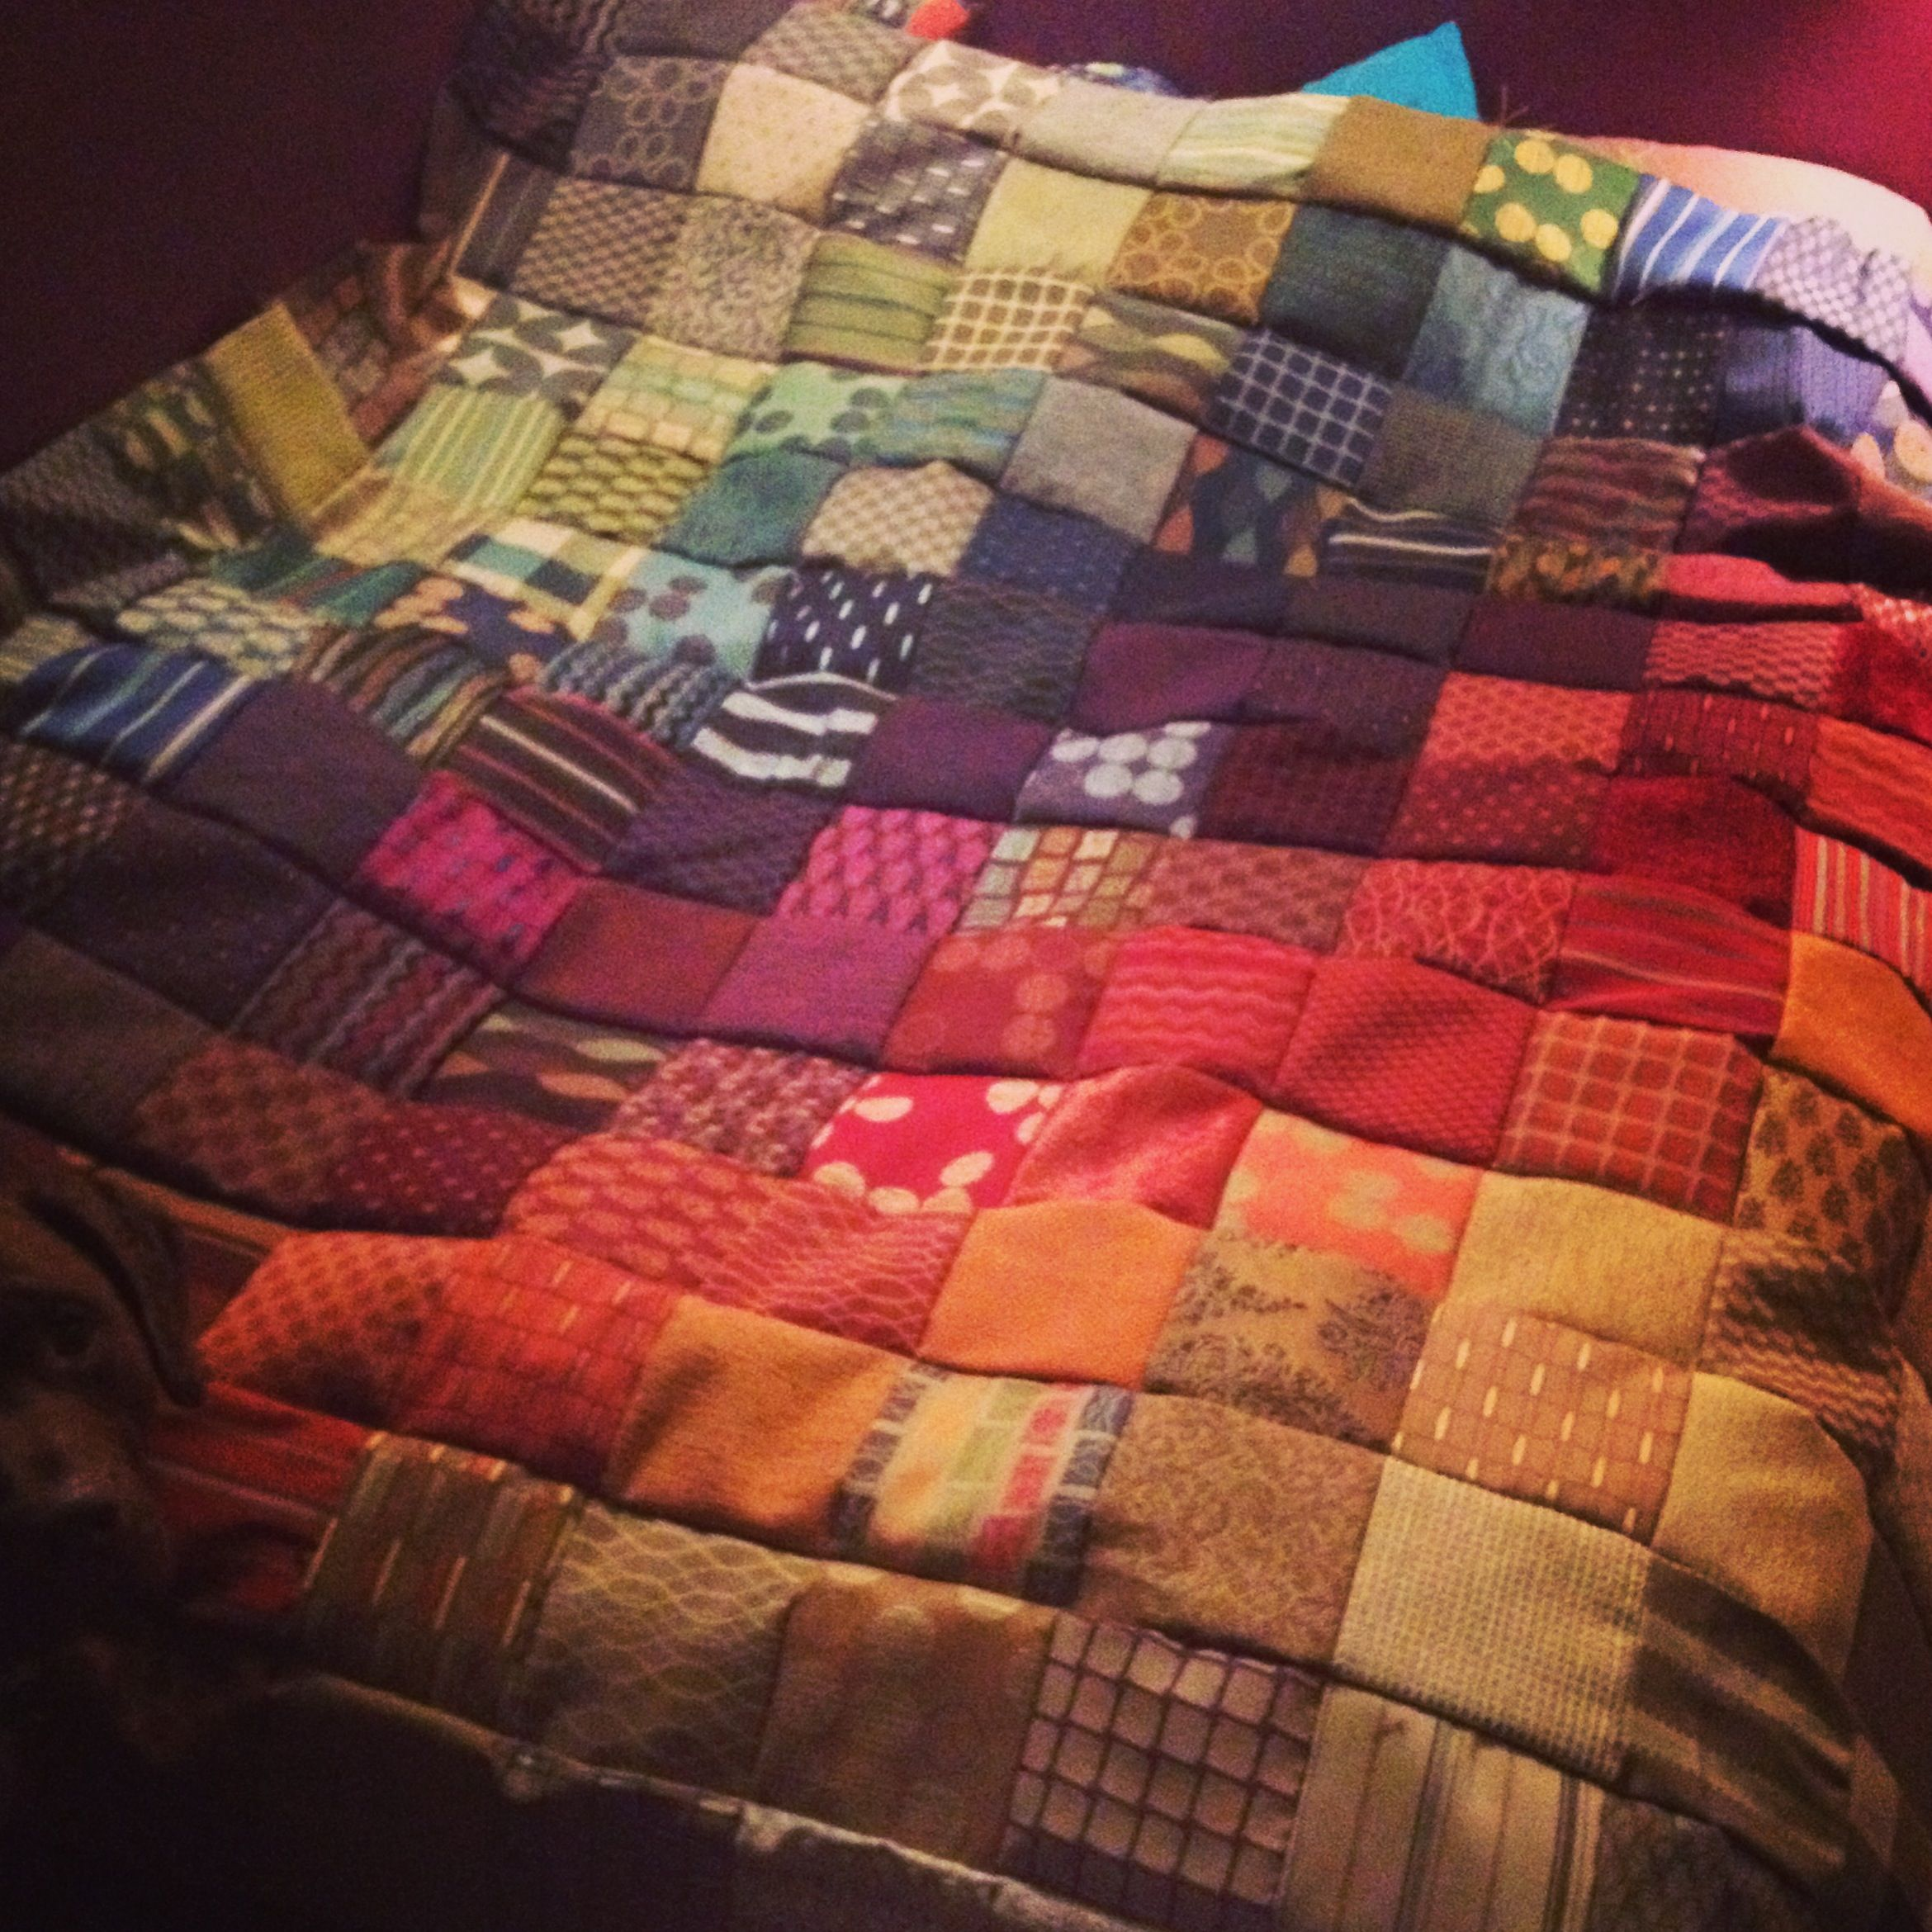 Quilt Made Out Of Upholstery Fabric Samples From My Work